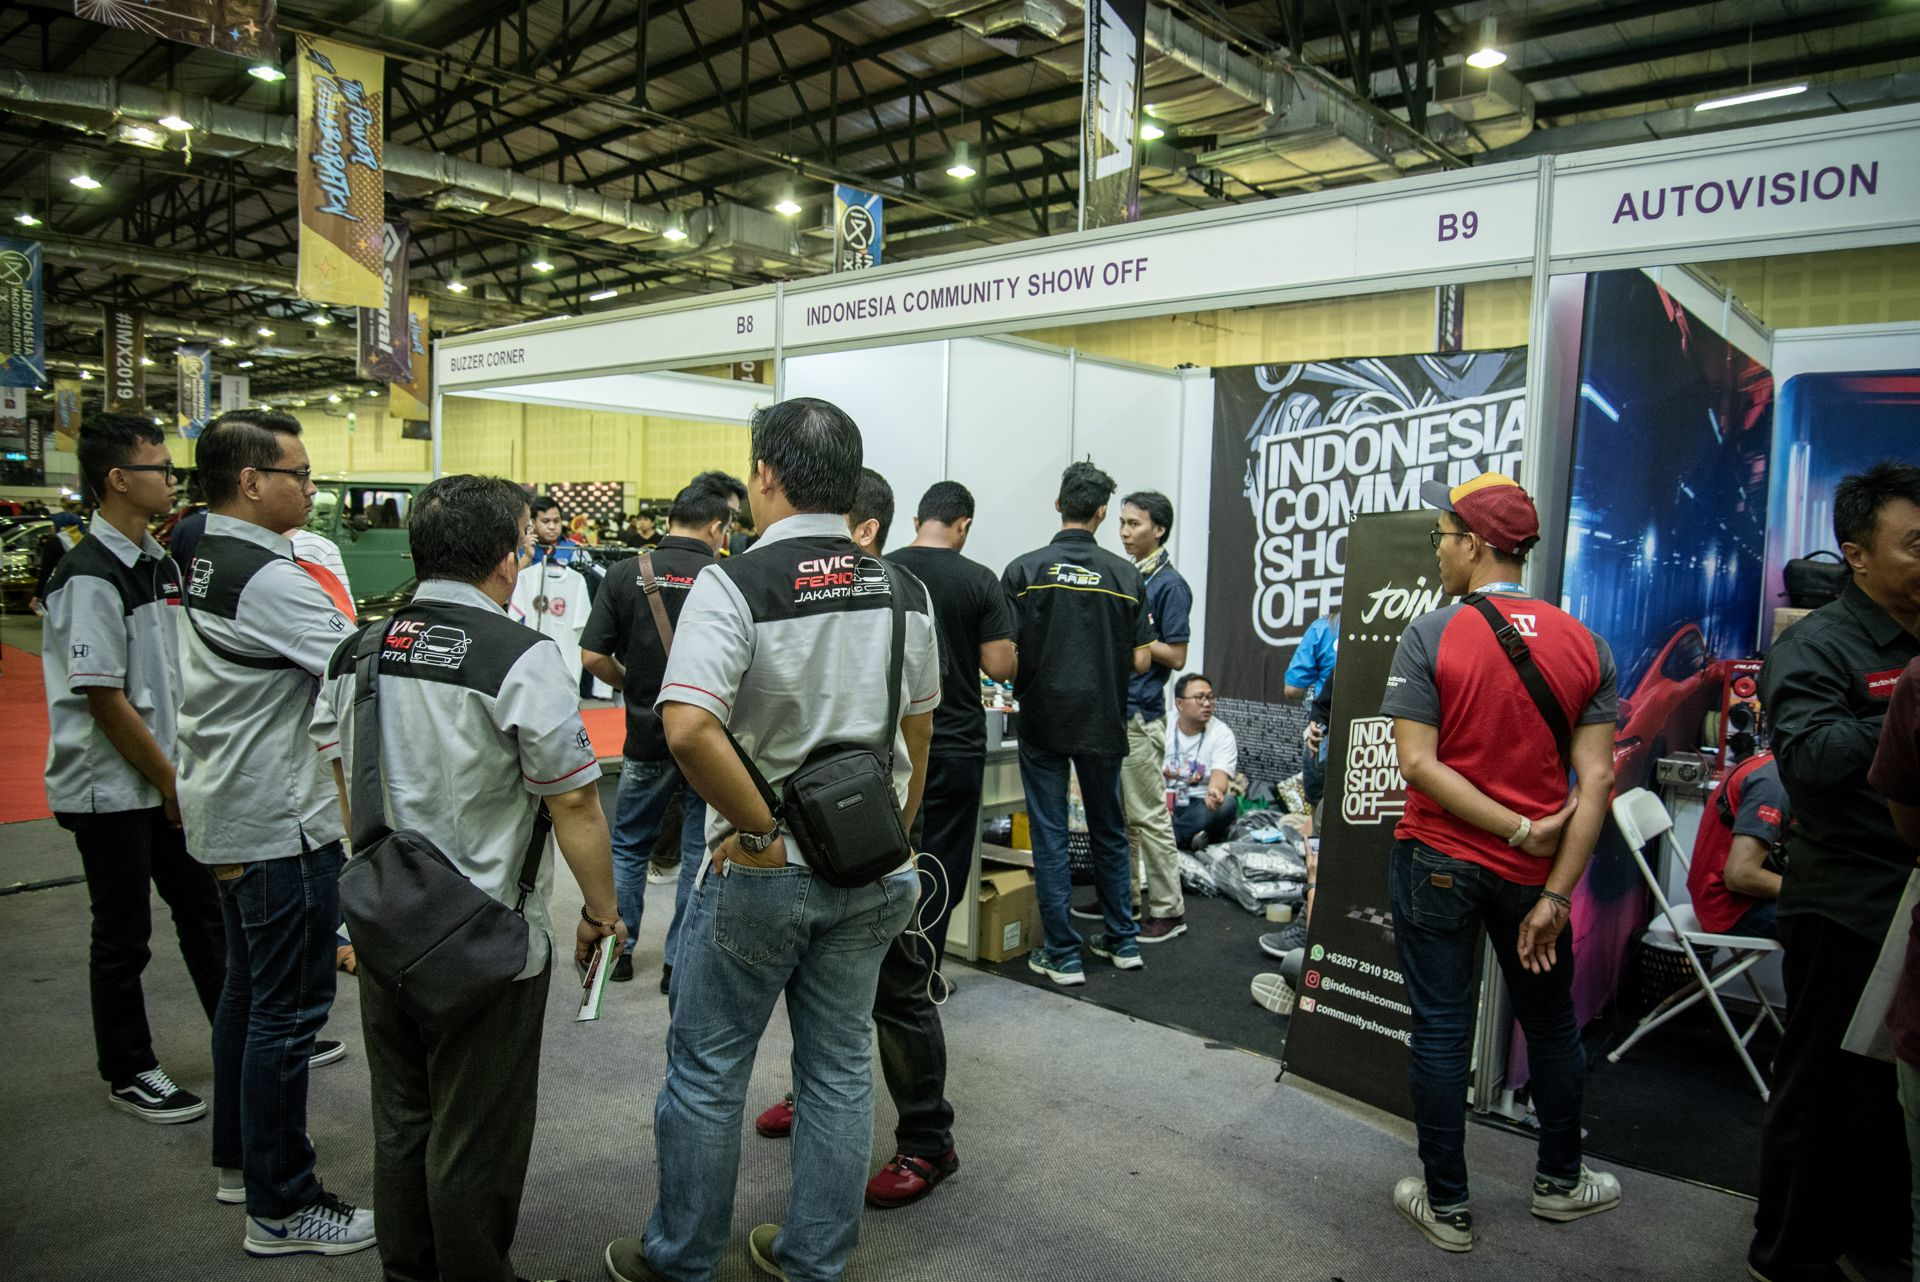 Imx aftermarket expo 2019 (40)